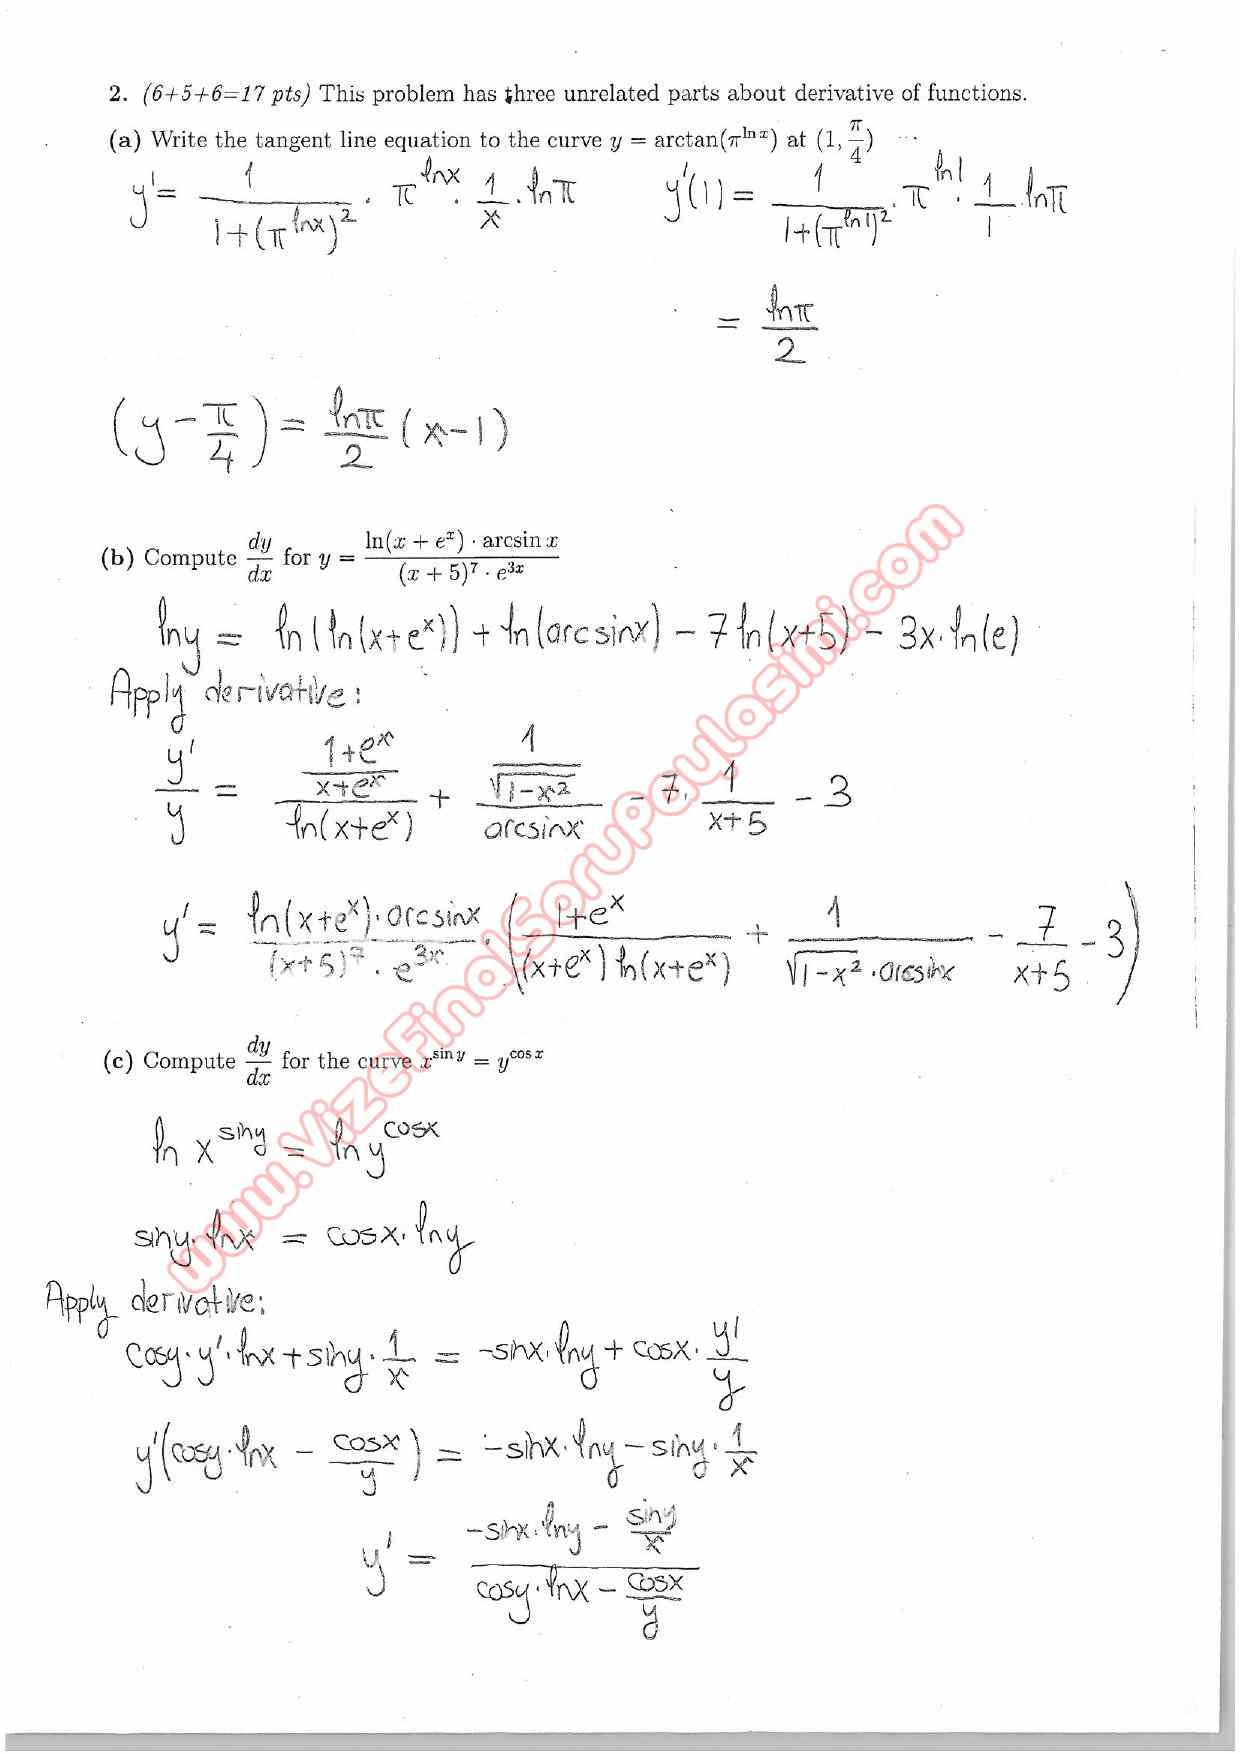 plane geometry textbook pdf with Calculus With Analytic Geometry George F Simmons Pdf Reader on Algebra 1 Glencoe Textbook also G 6kpo7e8f757c0t4li3548a0 as well 3 likewise Calculus With Analytic Geometry George F Simmons Pdf Reader together with Paws.